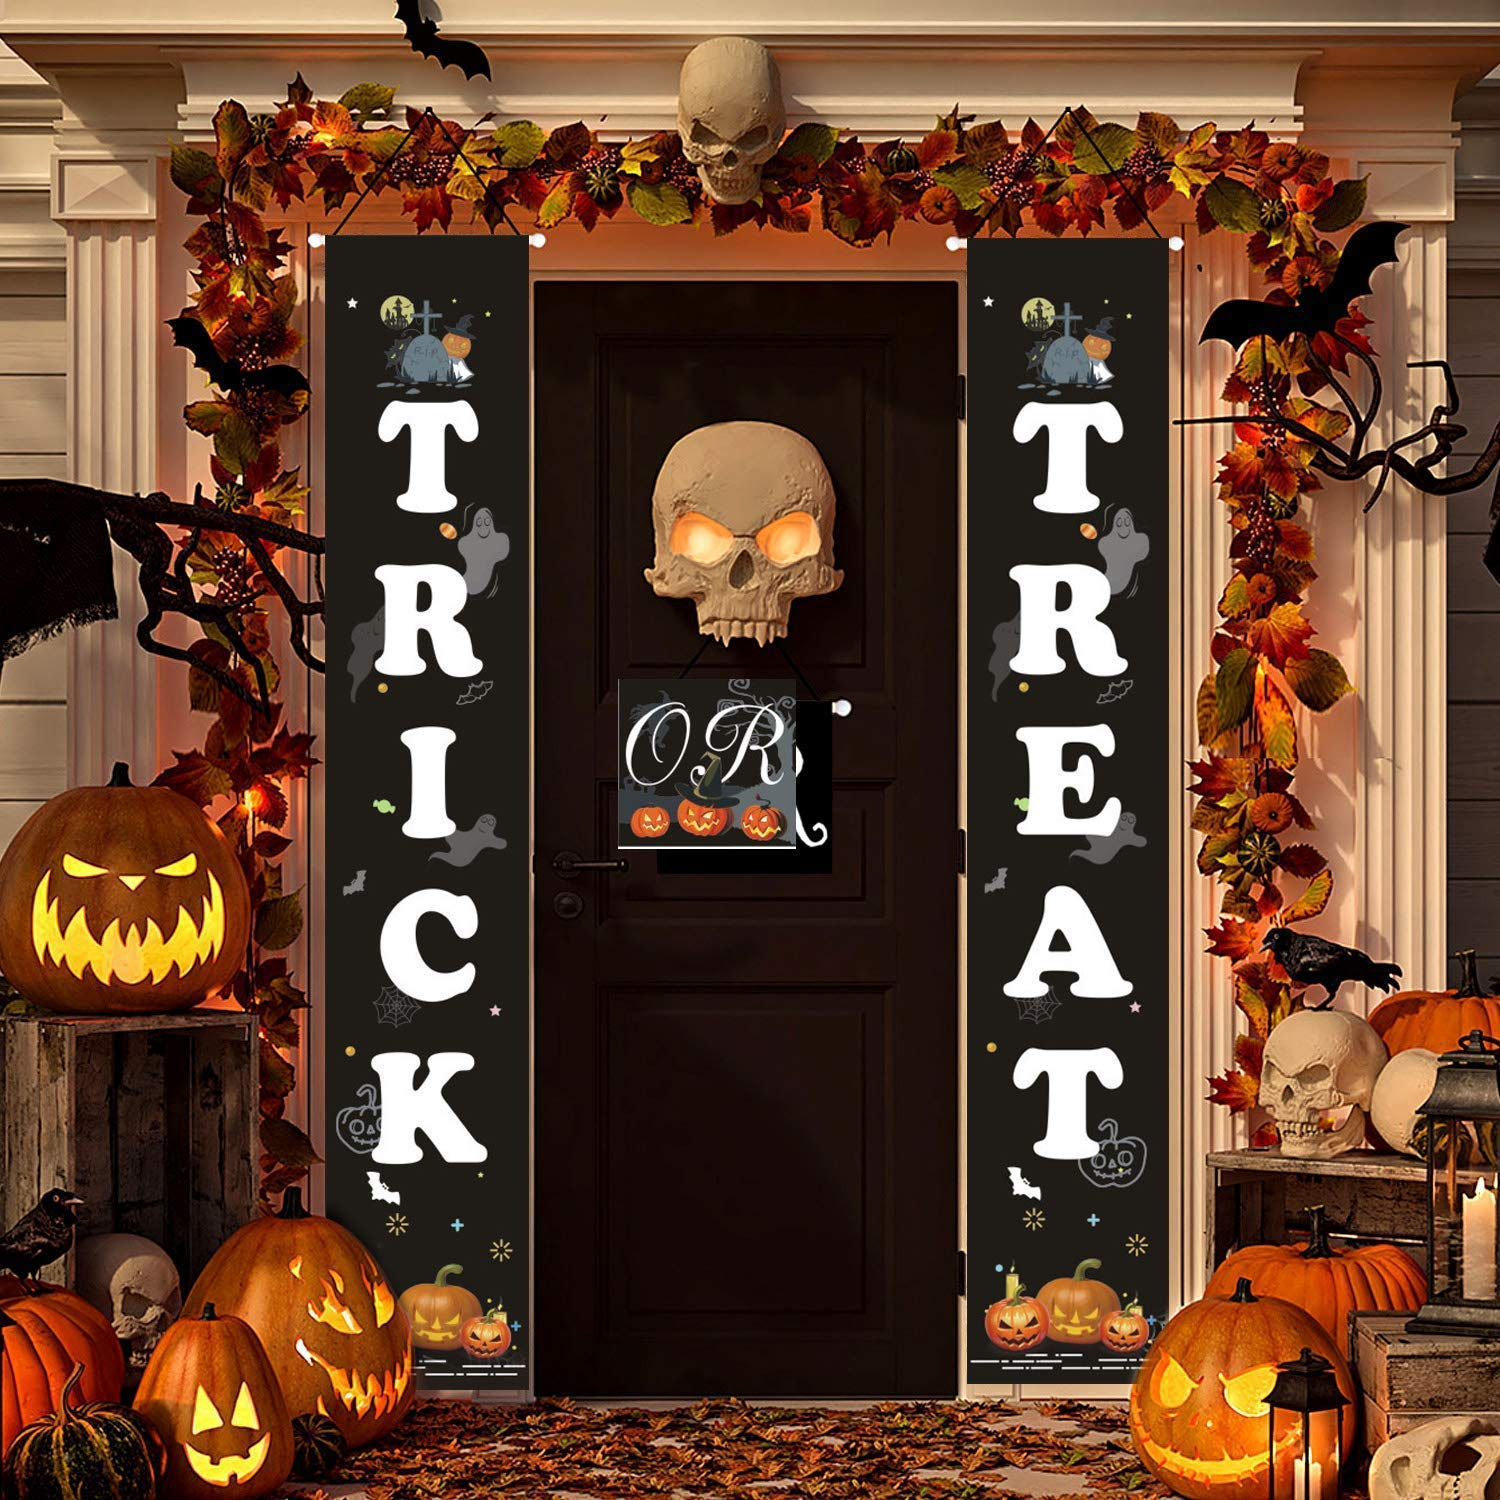 Emopeak Halloween Porch Decorations Outdoor - Trick or Treat & It's October Witches Halloween Signs for Front Door or Indoor Home Decor - Porch Decorations - Halloween Welcome Signs